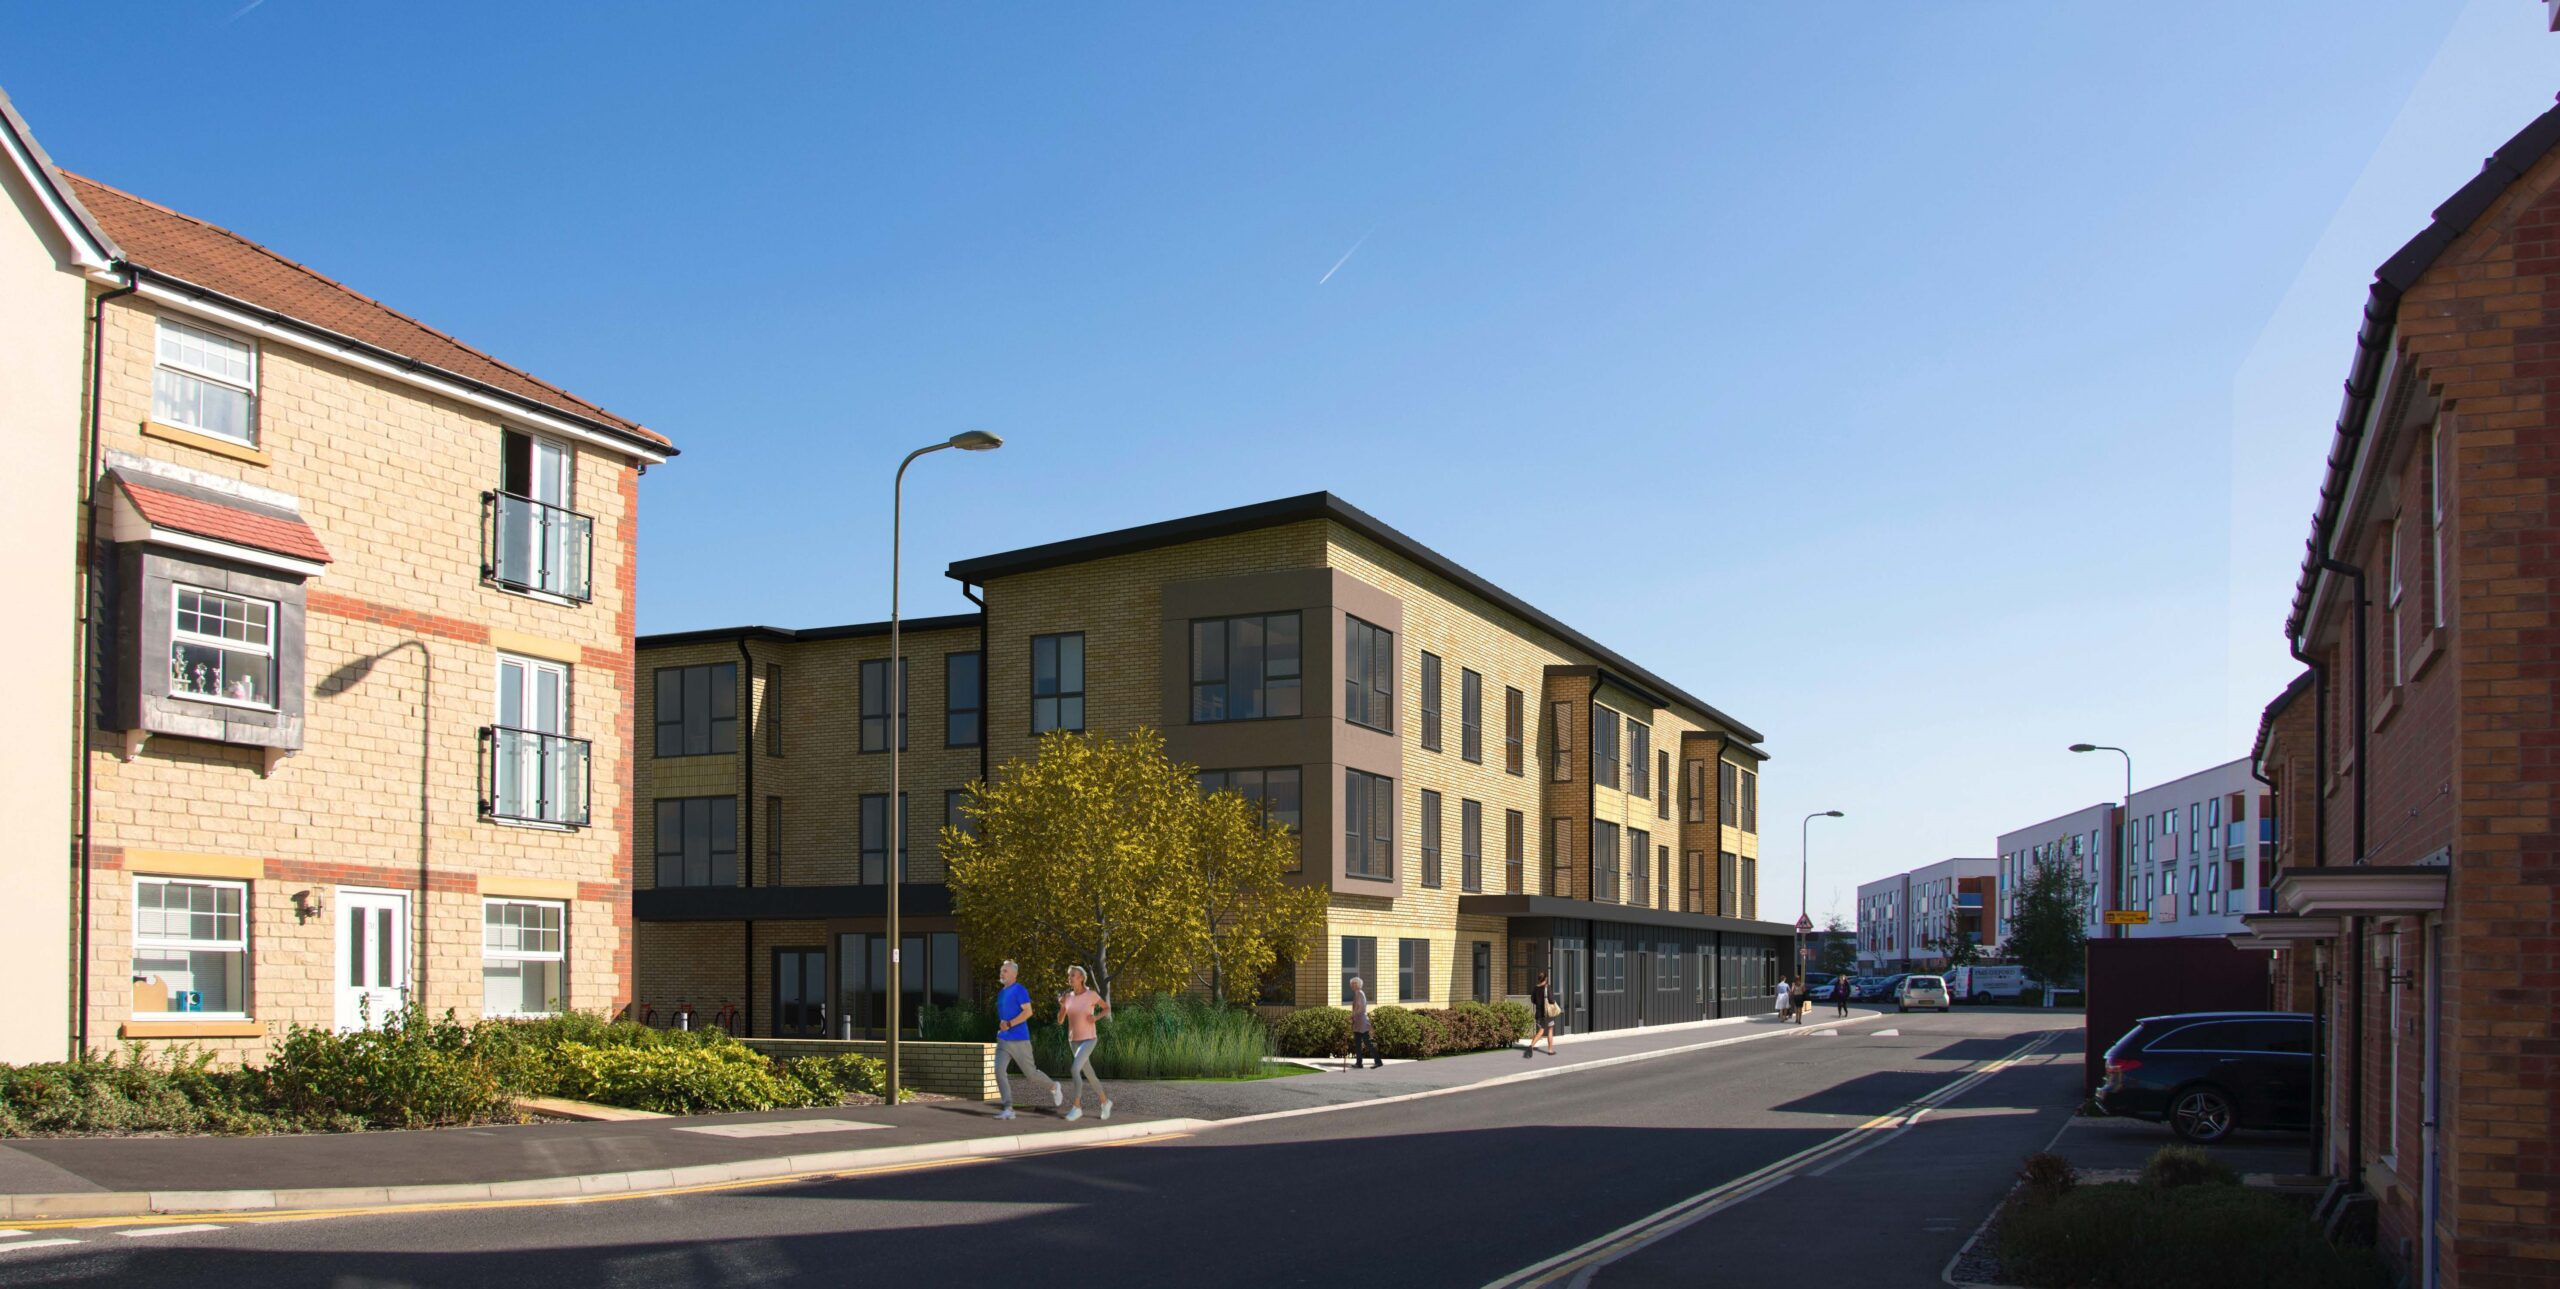 extra-care-great-western-park-didcot